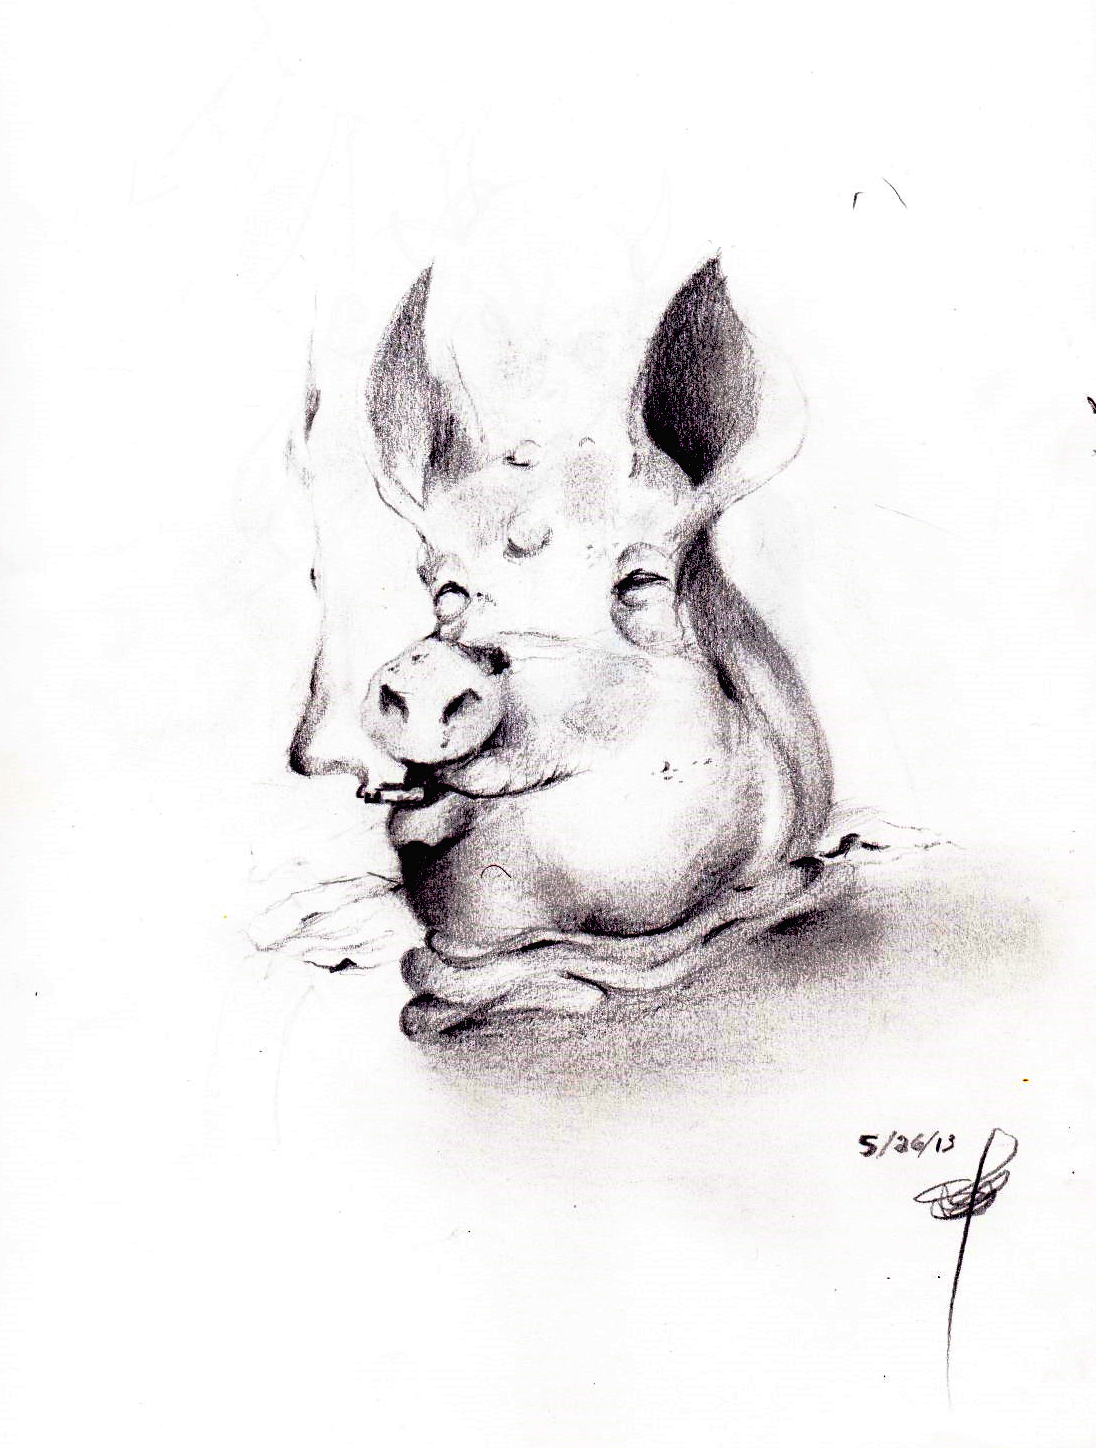 Decapicated pig with cigarette